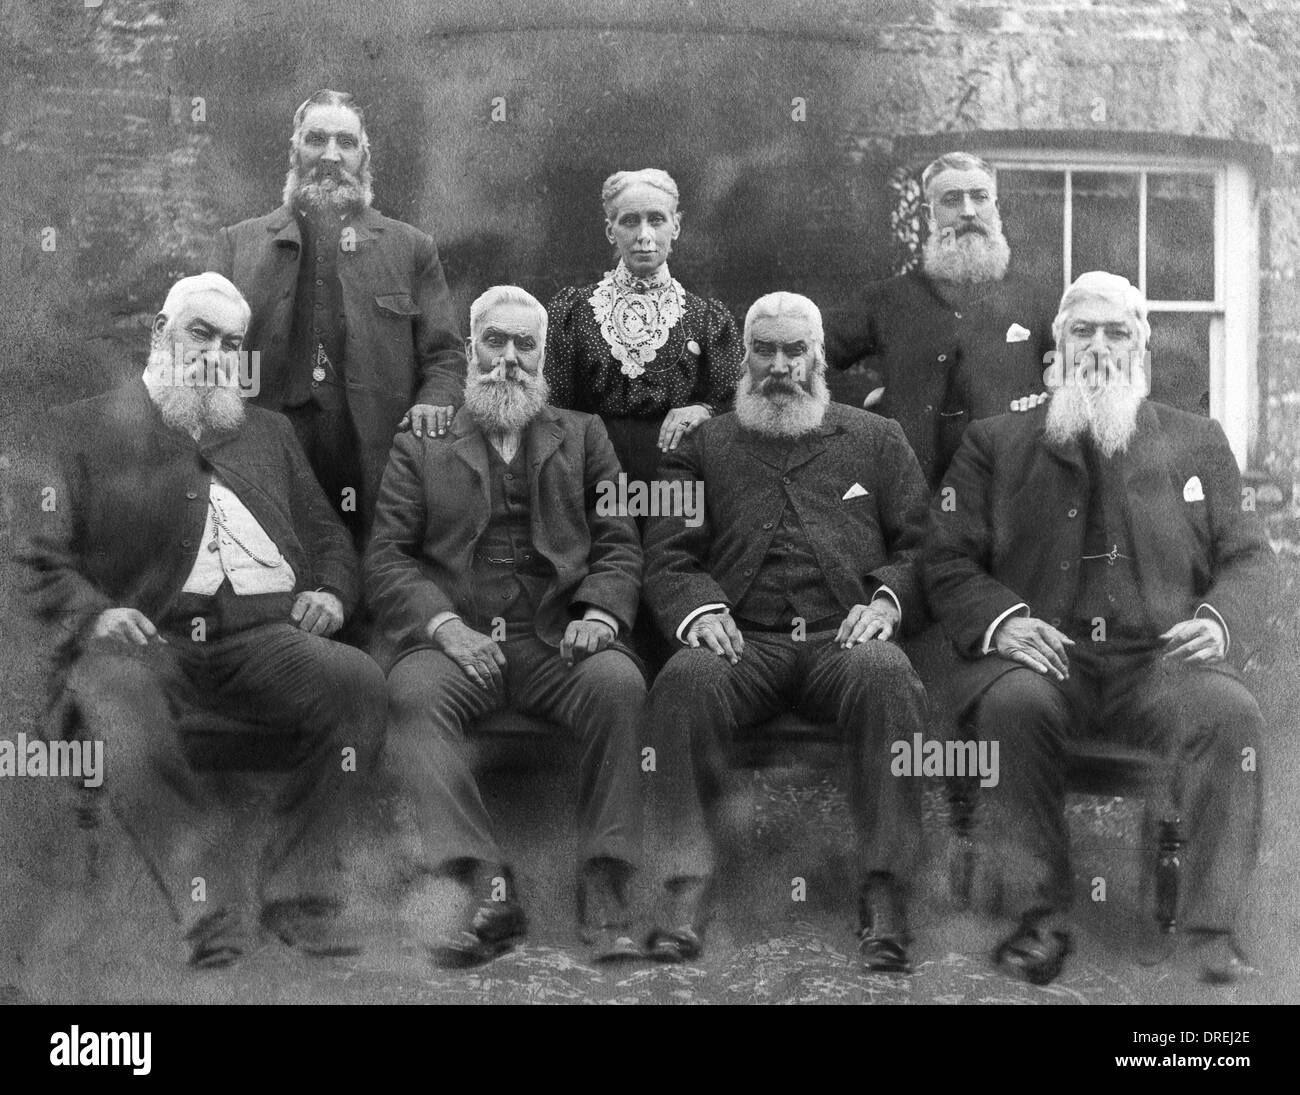 Elizabeth Gatley and her bearded brothers - Stock Image